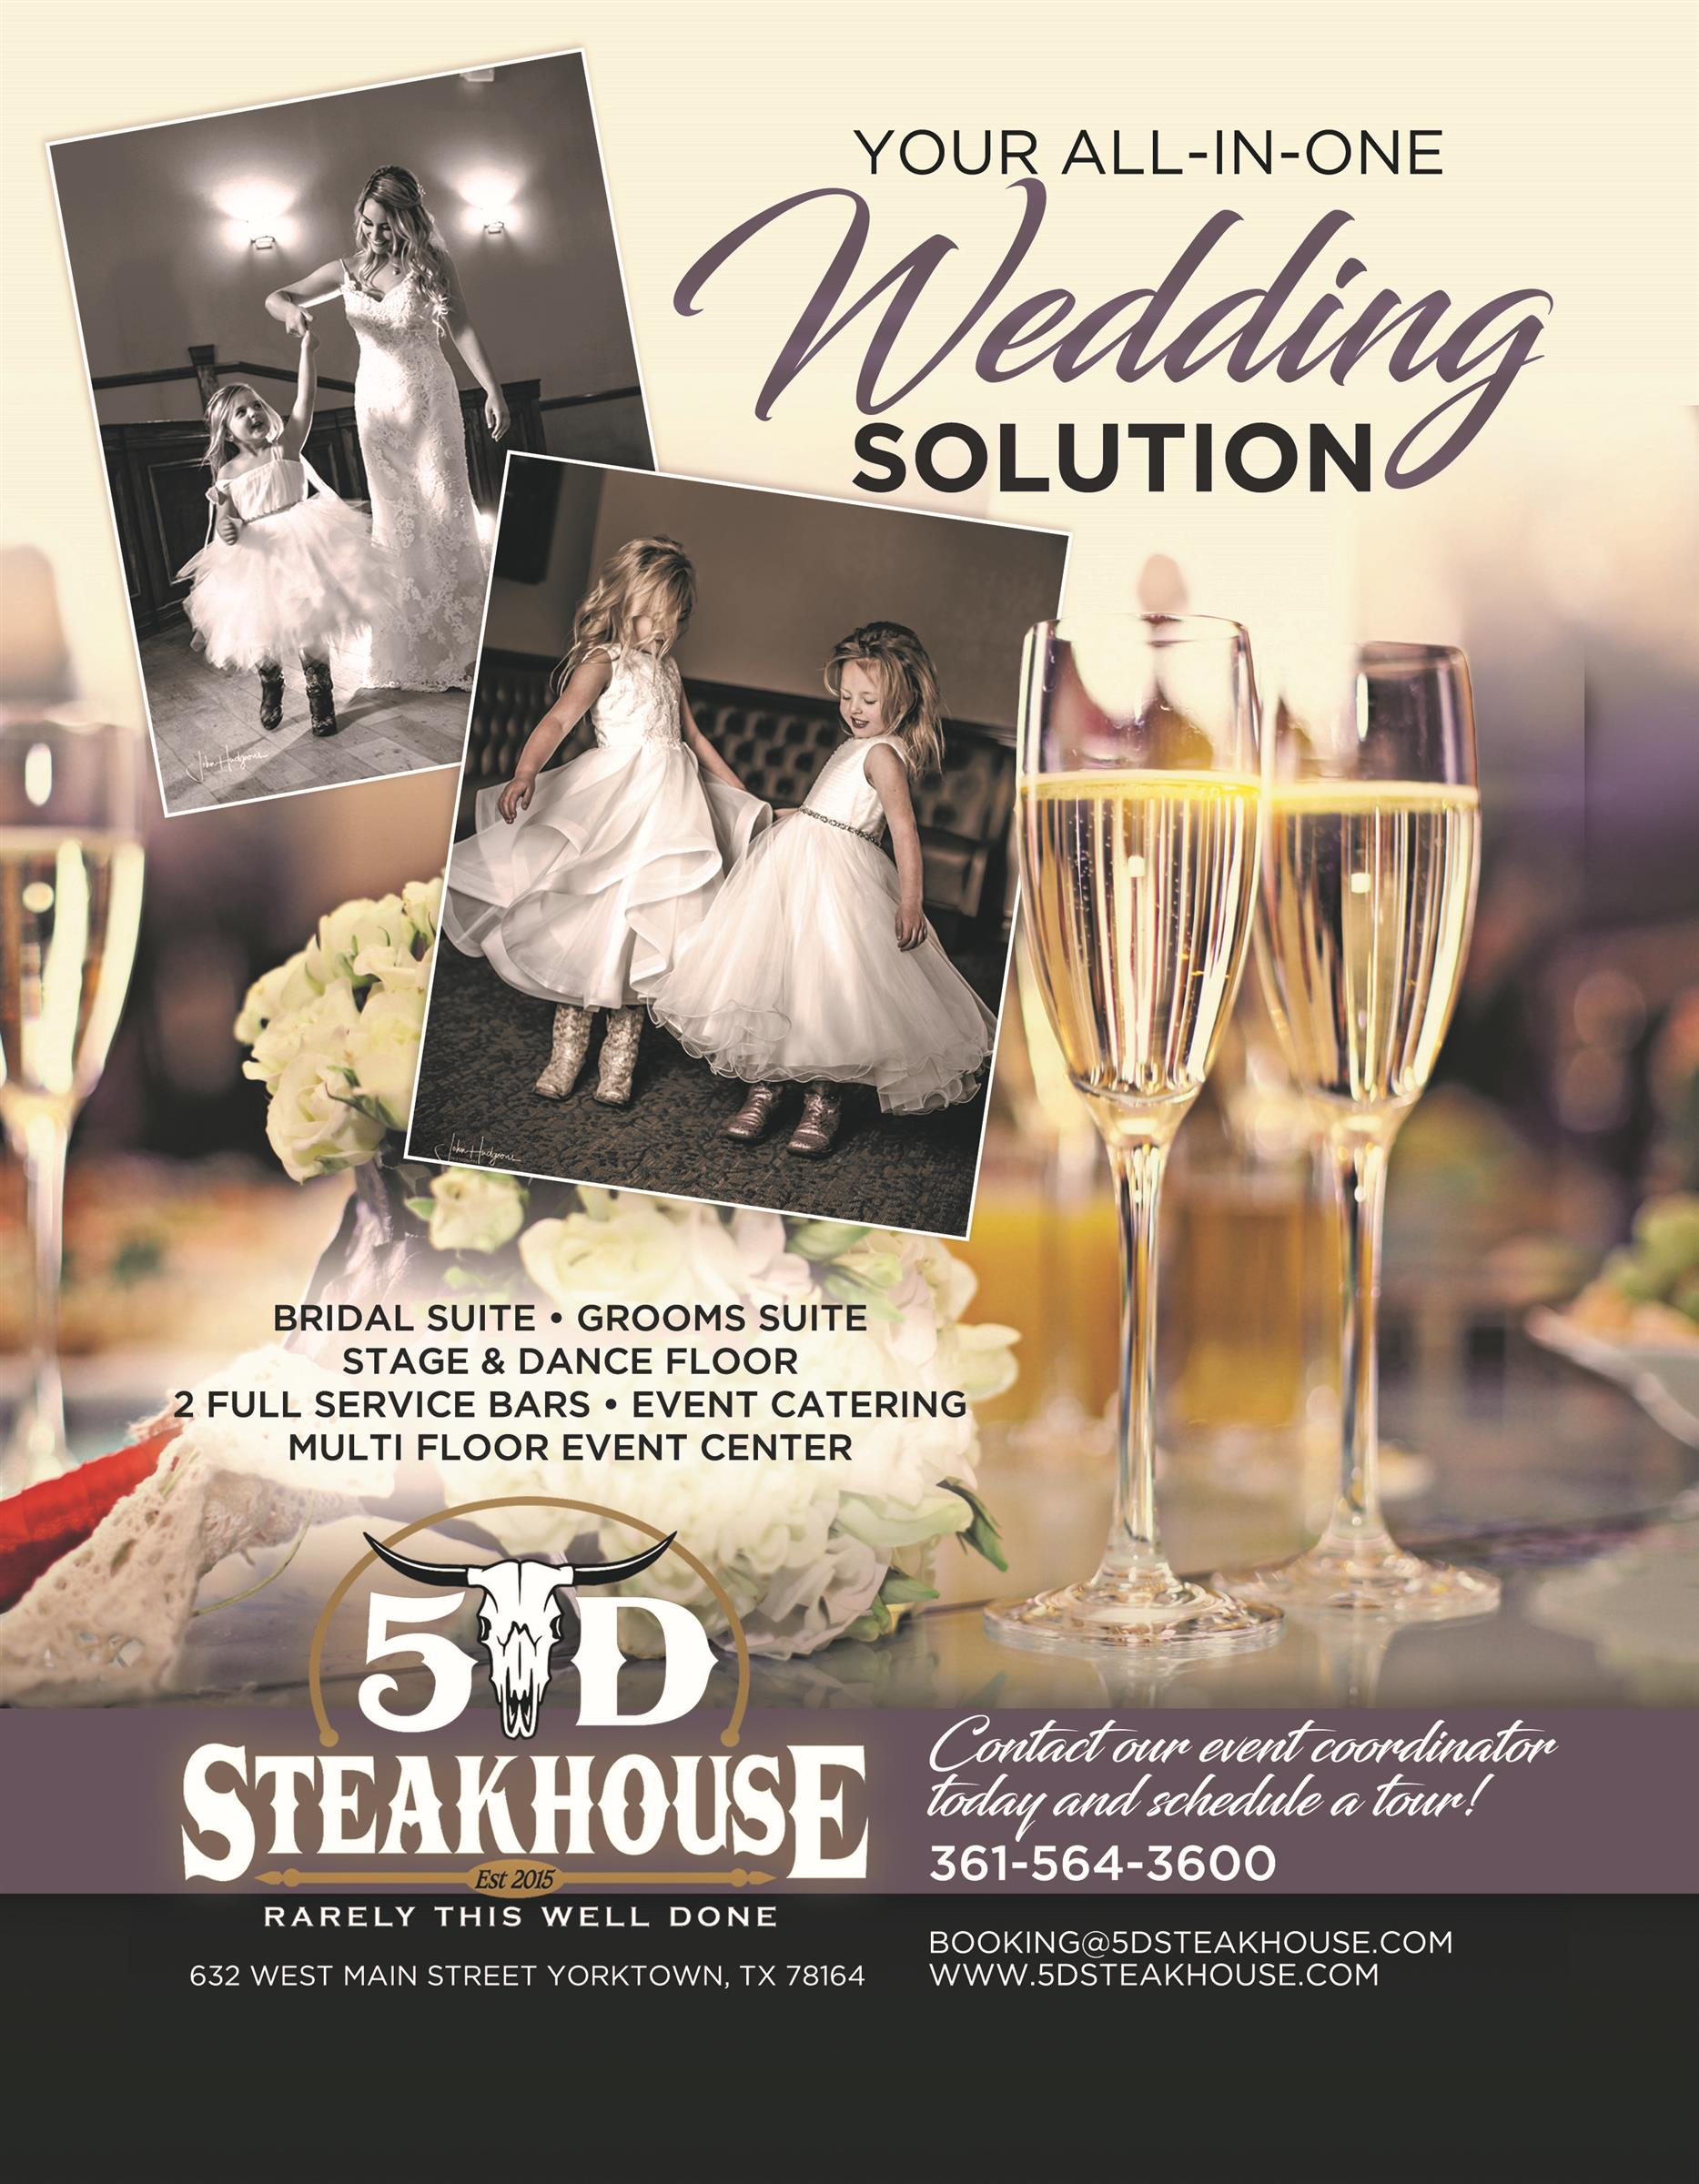 Your All-in-one Wedding Solution. Bridal Suite, Grooms Suite, Stage and dance floor, 2 full service bars, event catering multi floor event center. Contact our event coordinator today and schedule a tour! 361-564-3600. Booking@5dsteakhouse.com